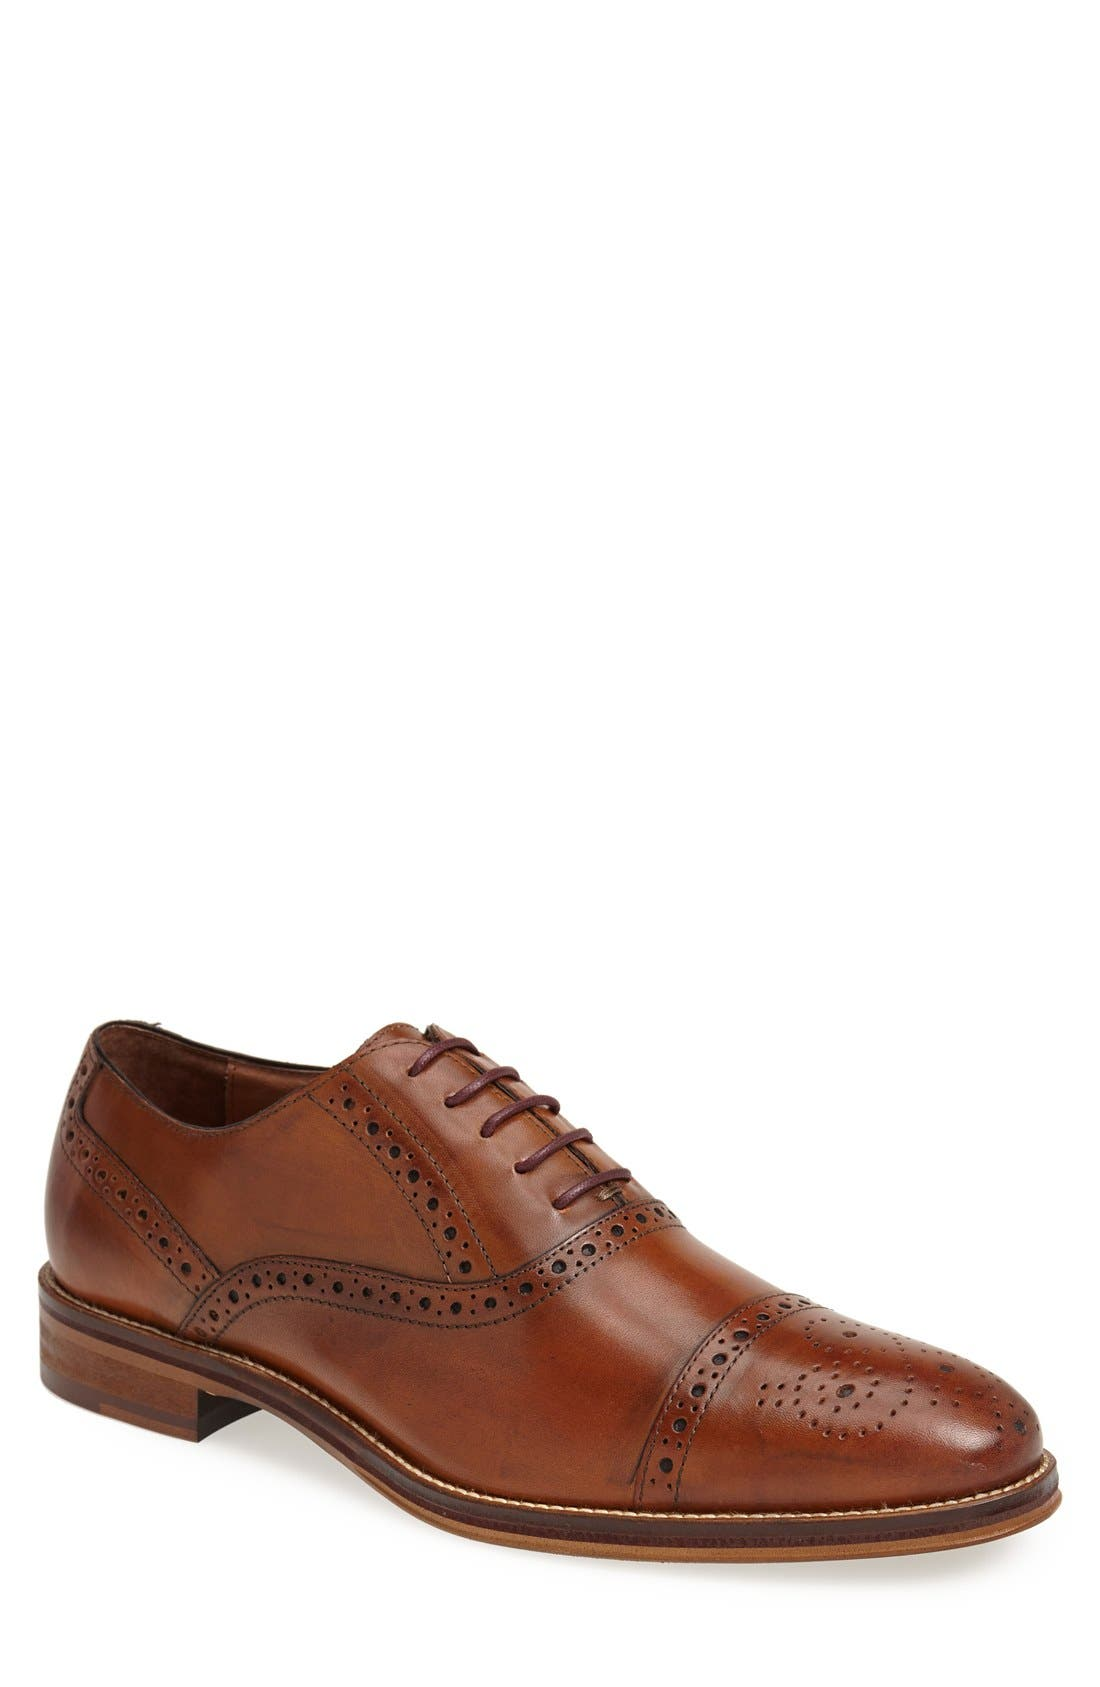 Johnston & Murphy Conard Cap Toe Oxford (Men)